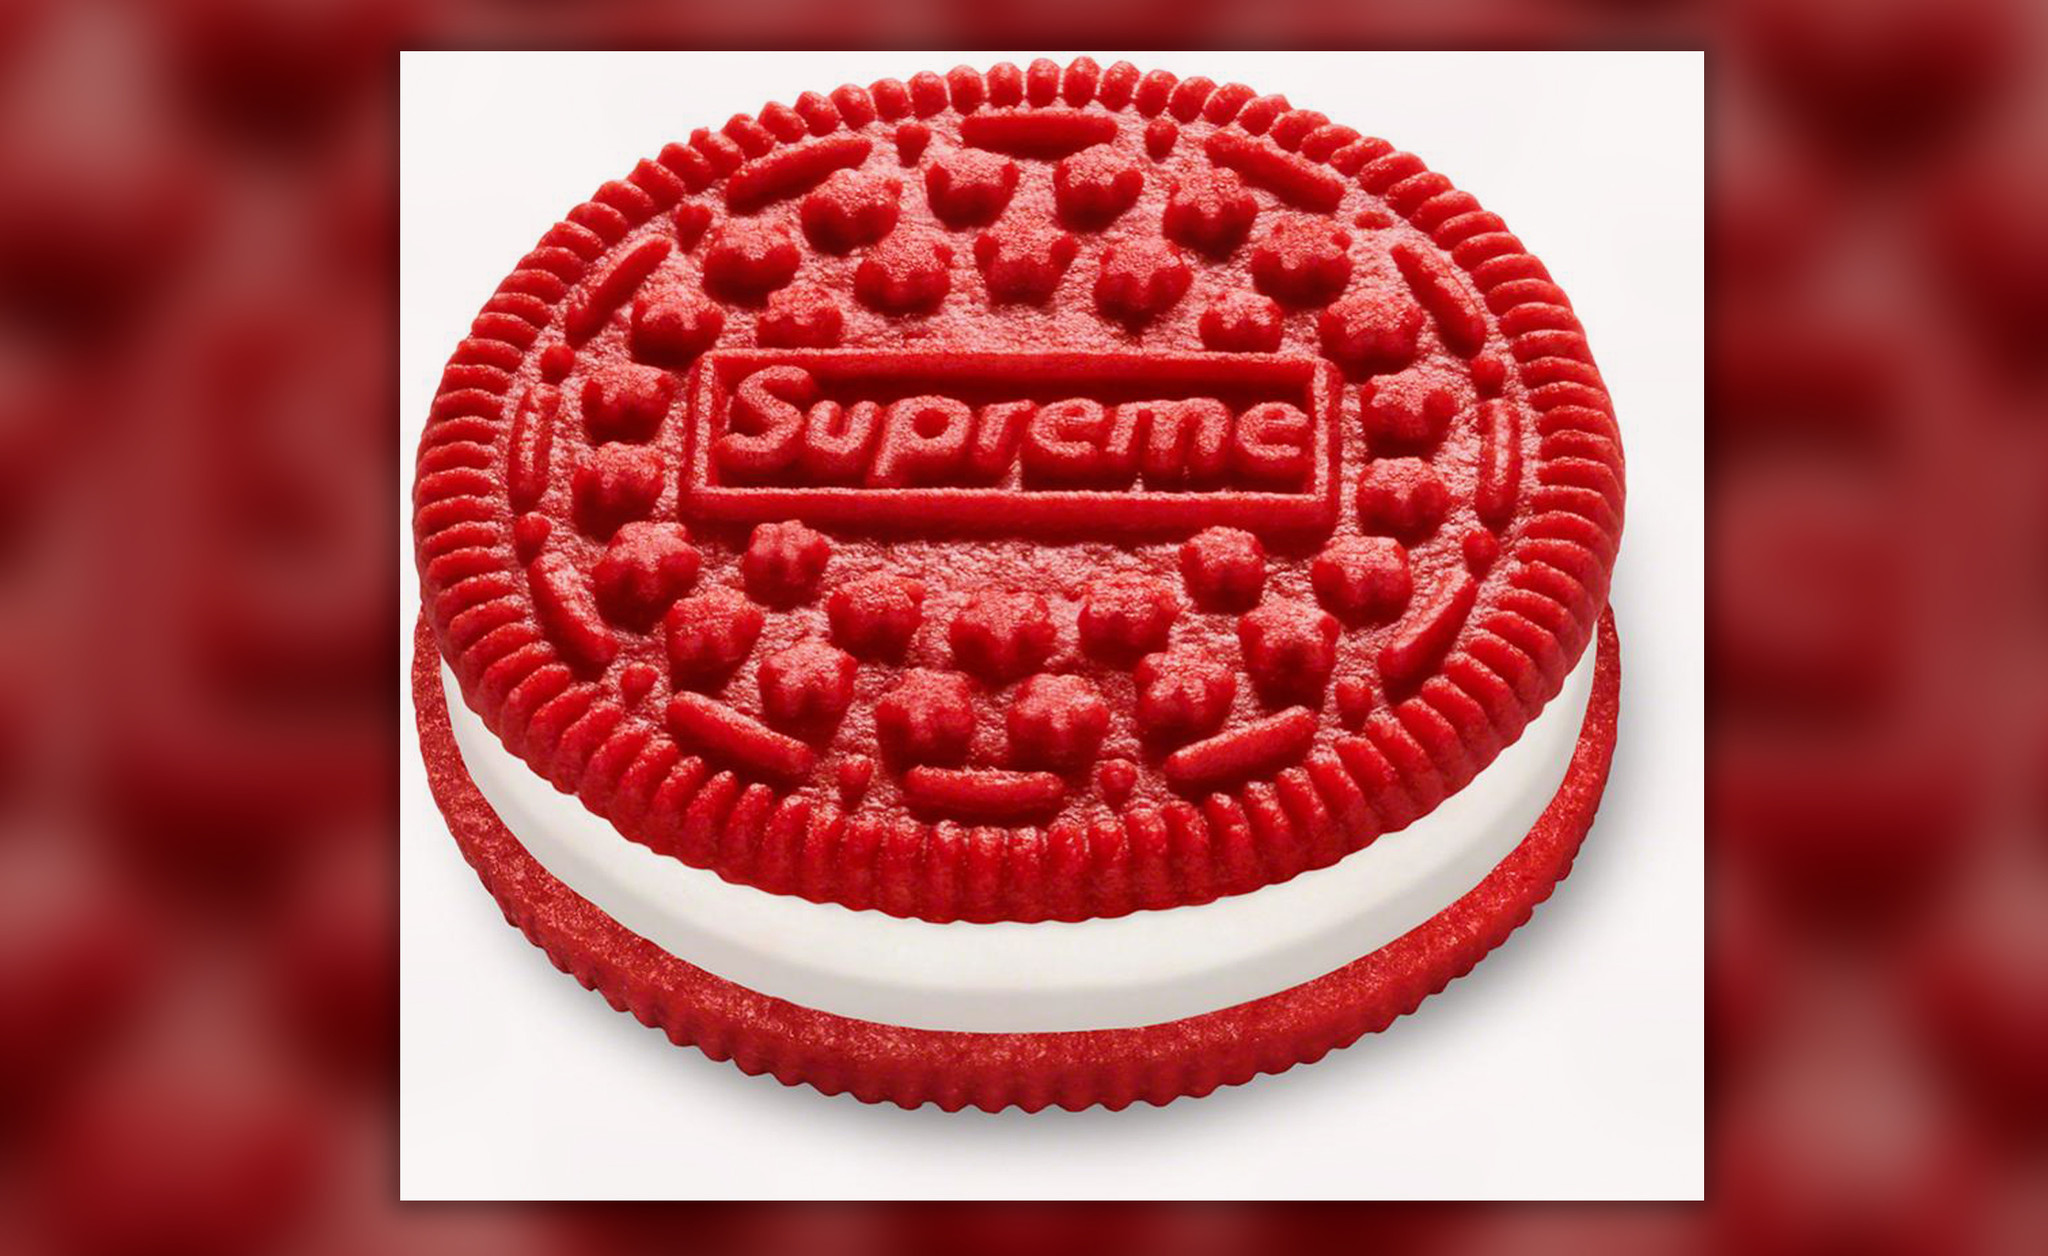 Getting that cream: Supreme Oreos selling for $4K on eBay